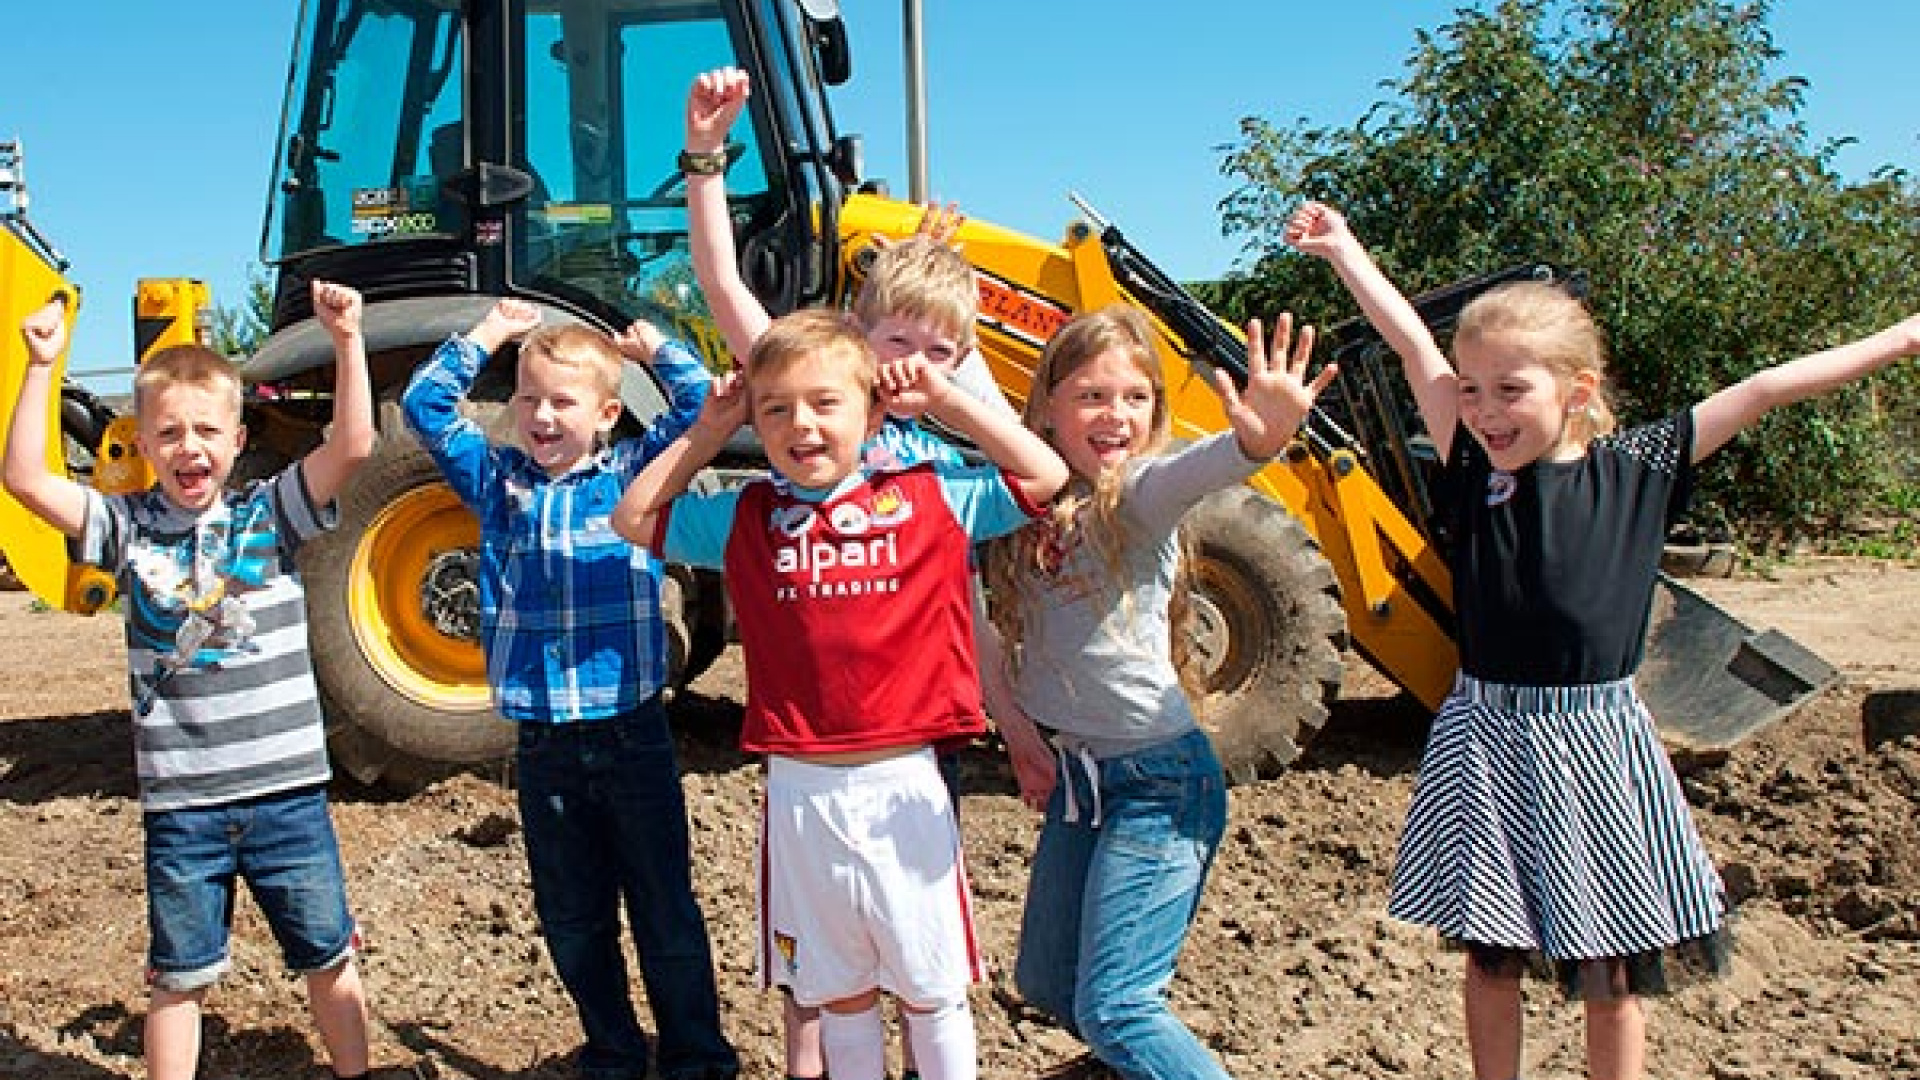 Kids having fun at Diggerland